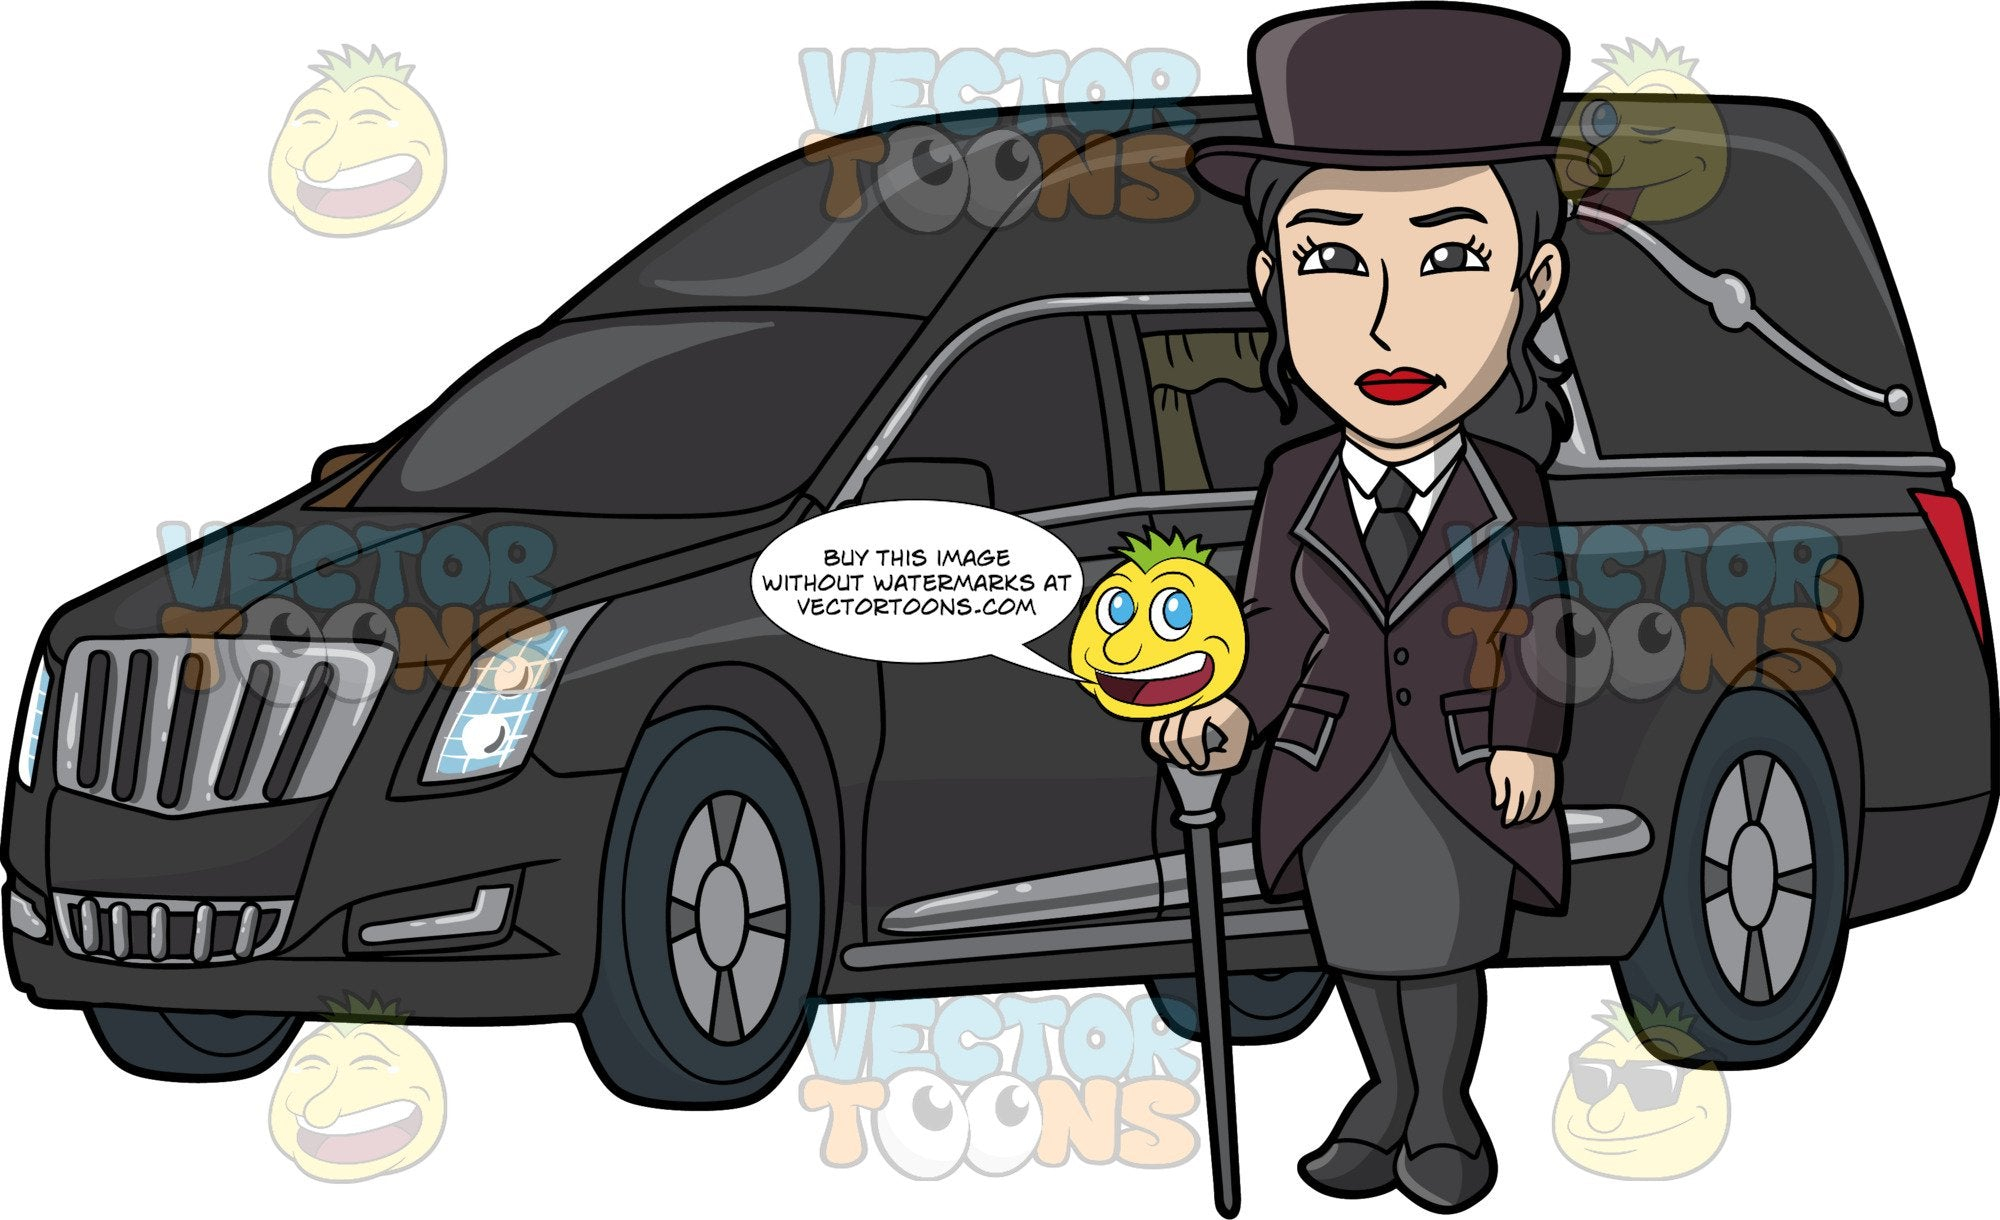 A Silent Female Funeral Director. A woman with black hair, wearing a black top hat, dress jacket with tail, heels, stockings, necktie, white dress shirt, gray skirt, stands beside a black hearse while holding a two tone gray cane in her right hand